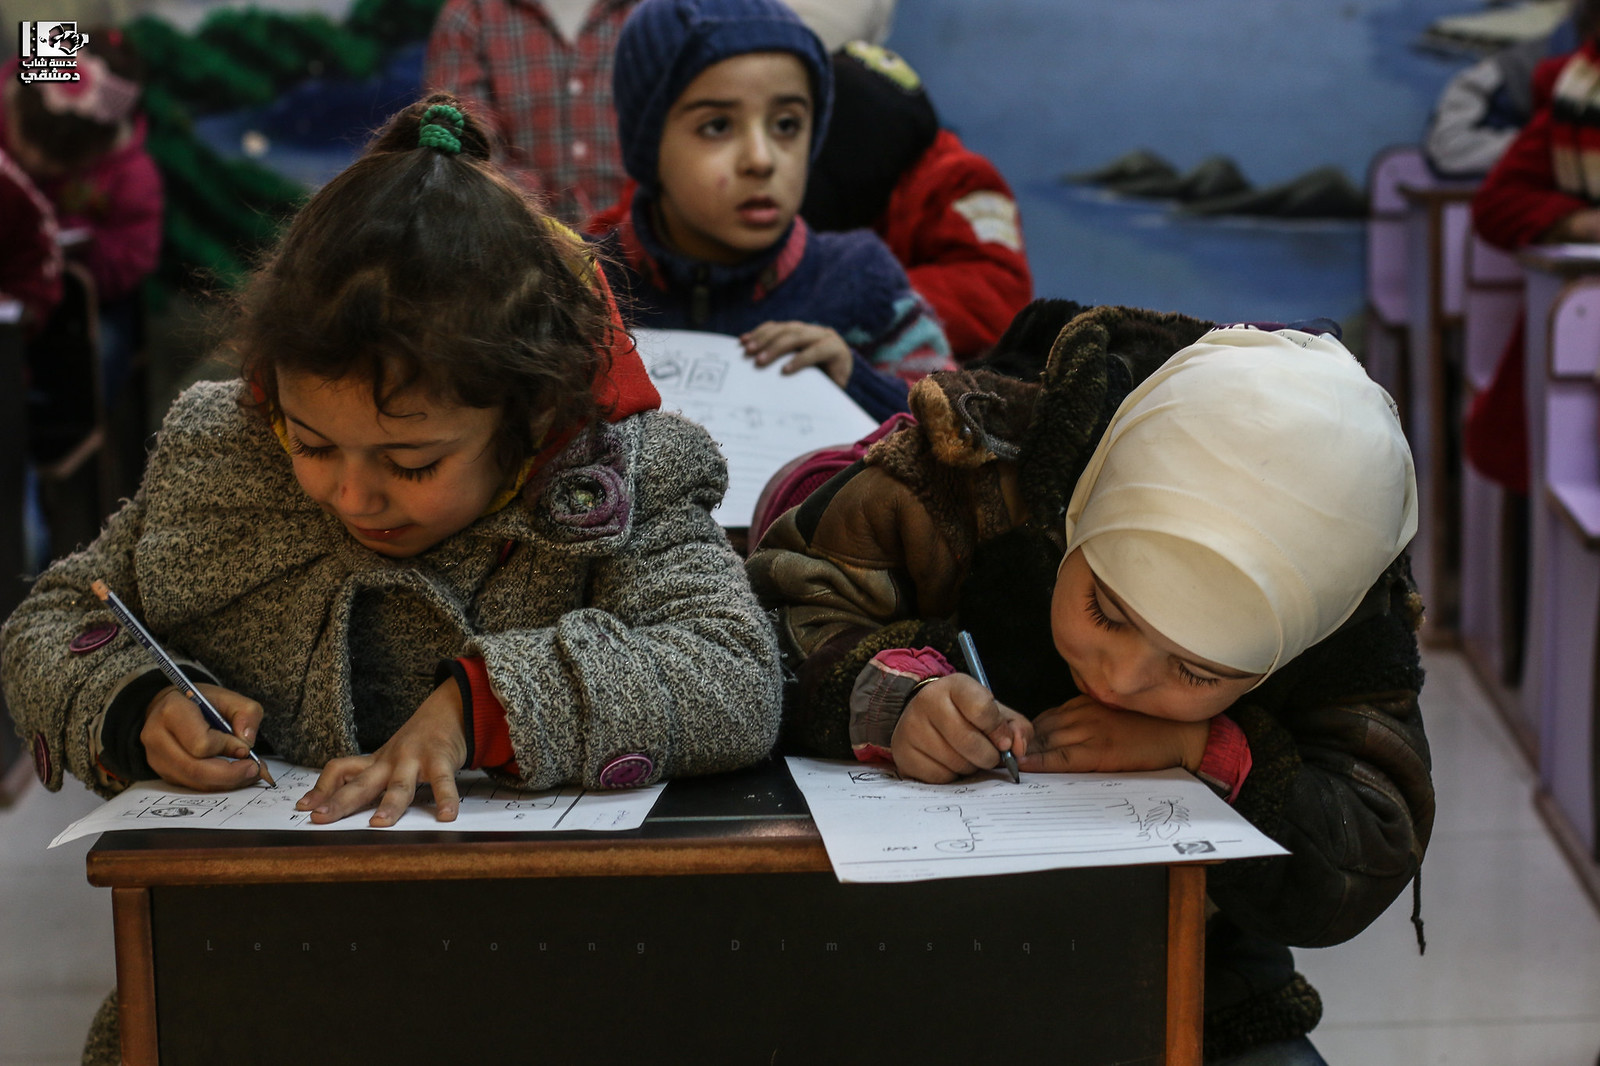 Studying Under the Ground is Safer | by Take a look on Syria without propaganda